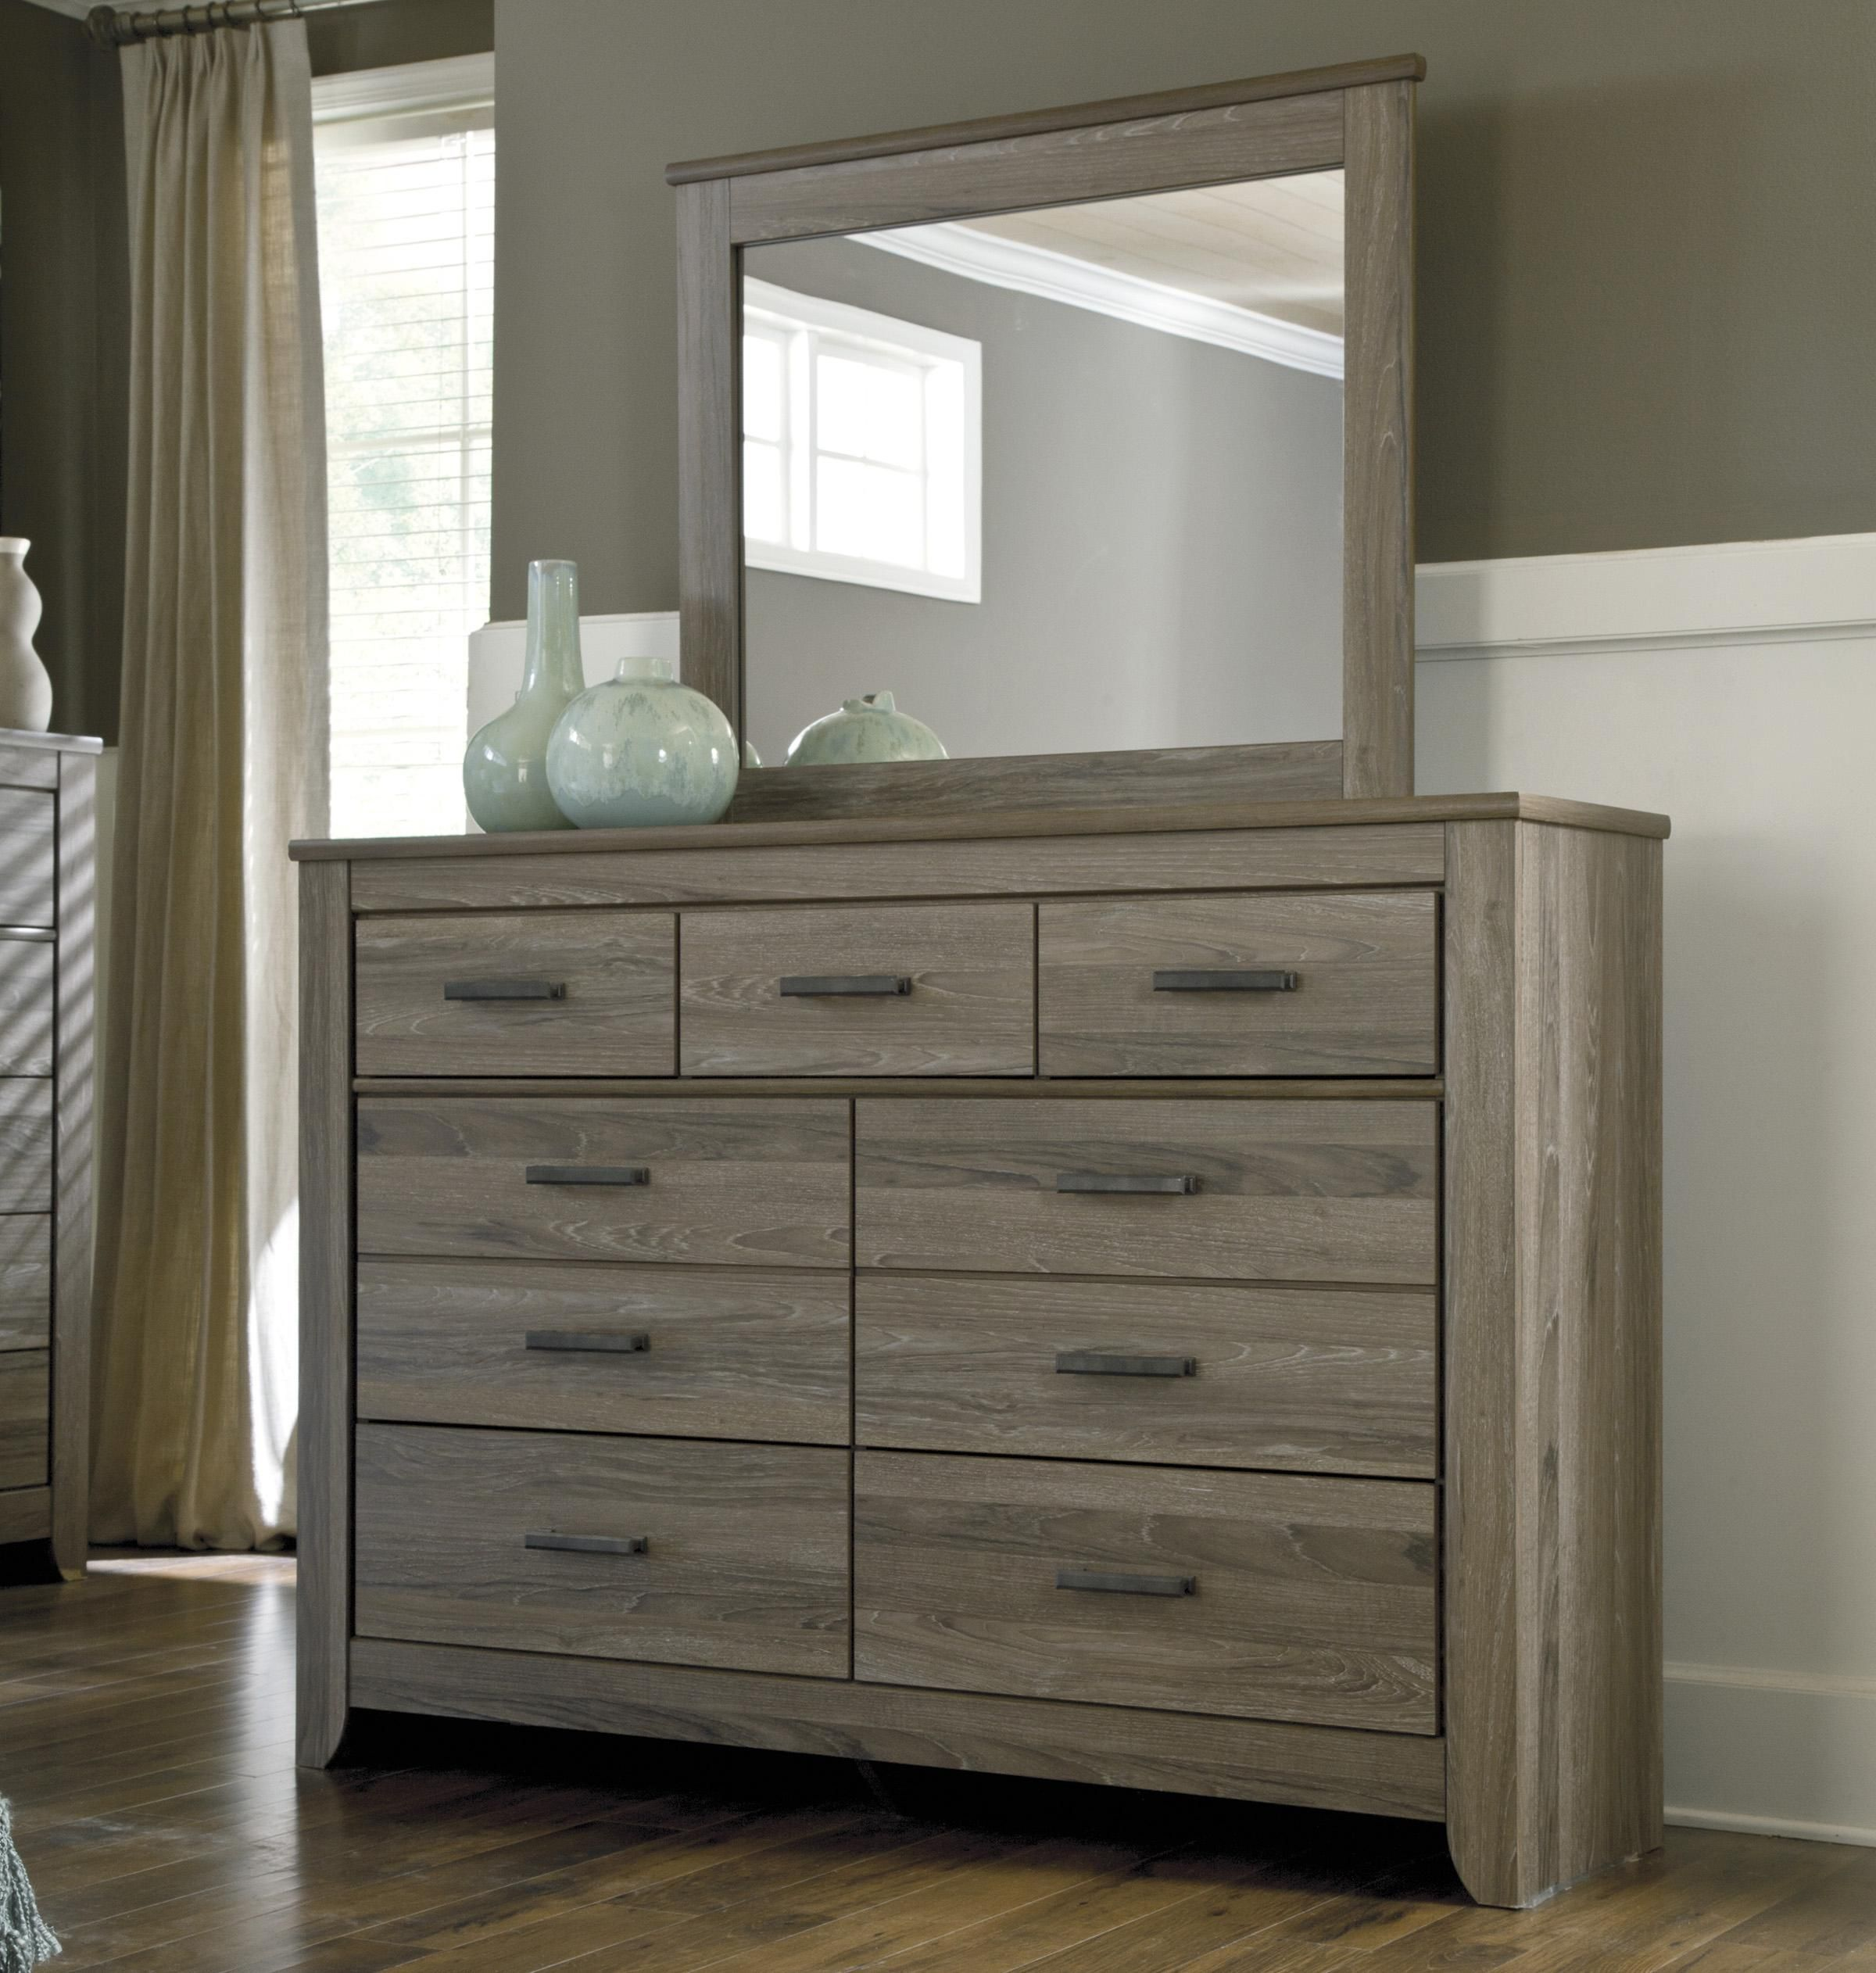 micco furniture sw dresser multi zayley etc com bedroom ashley from